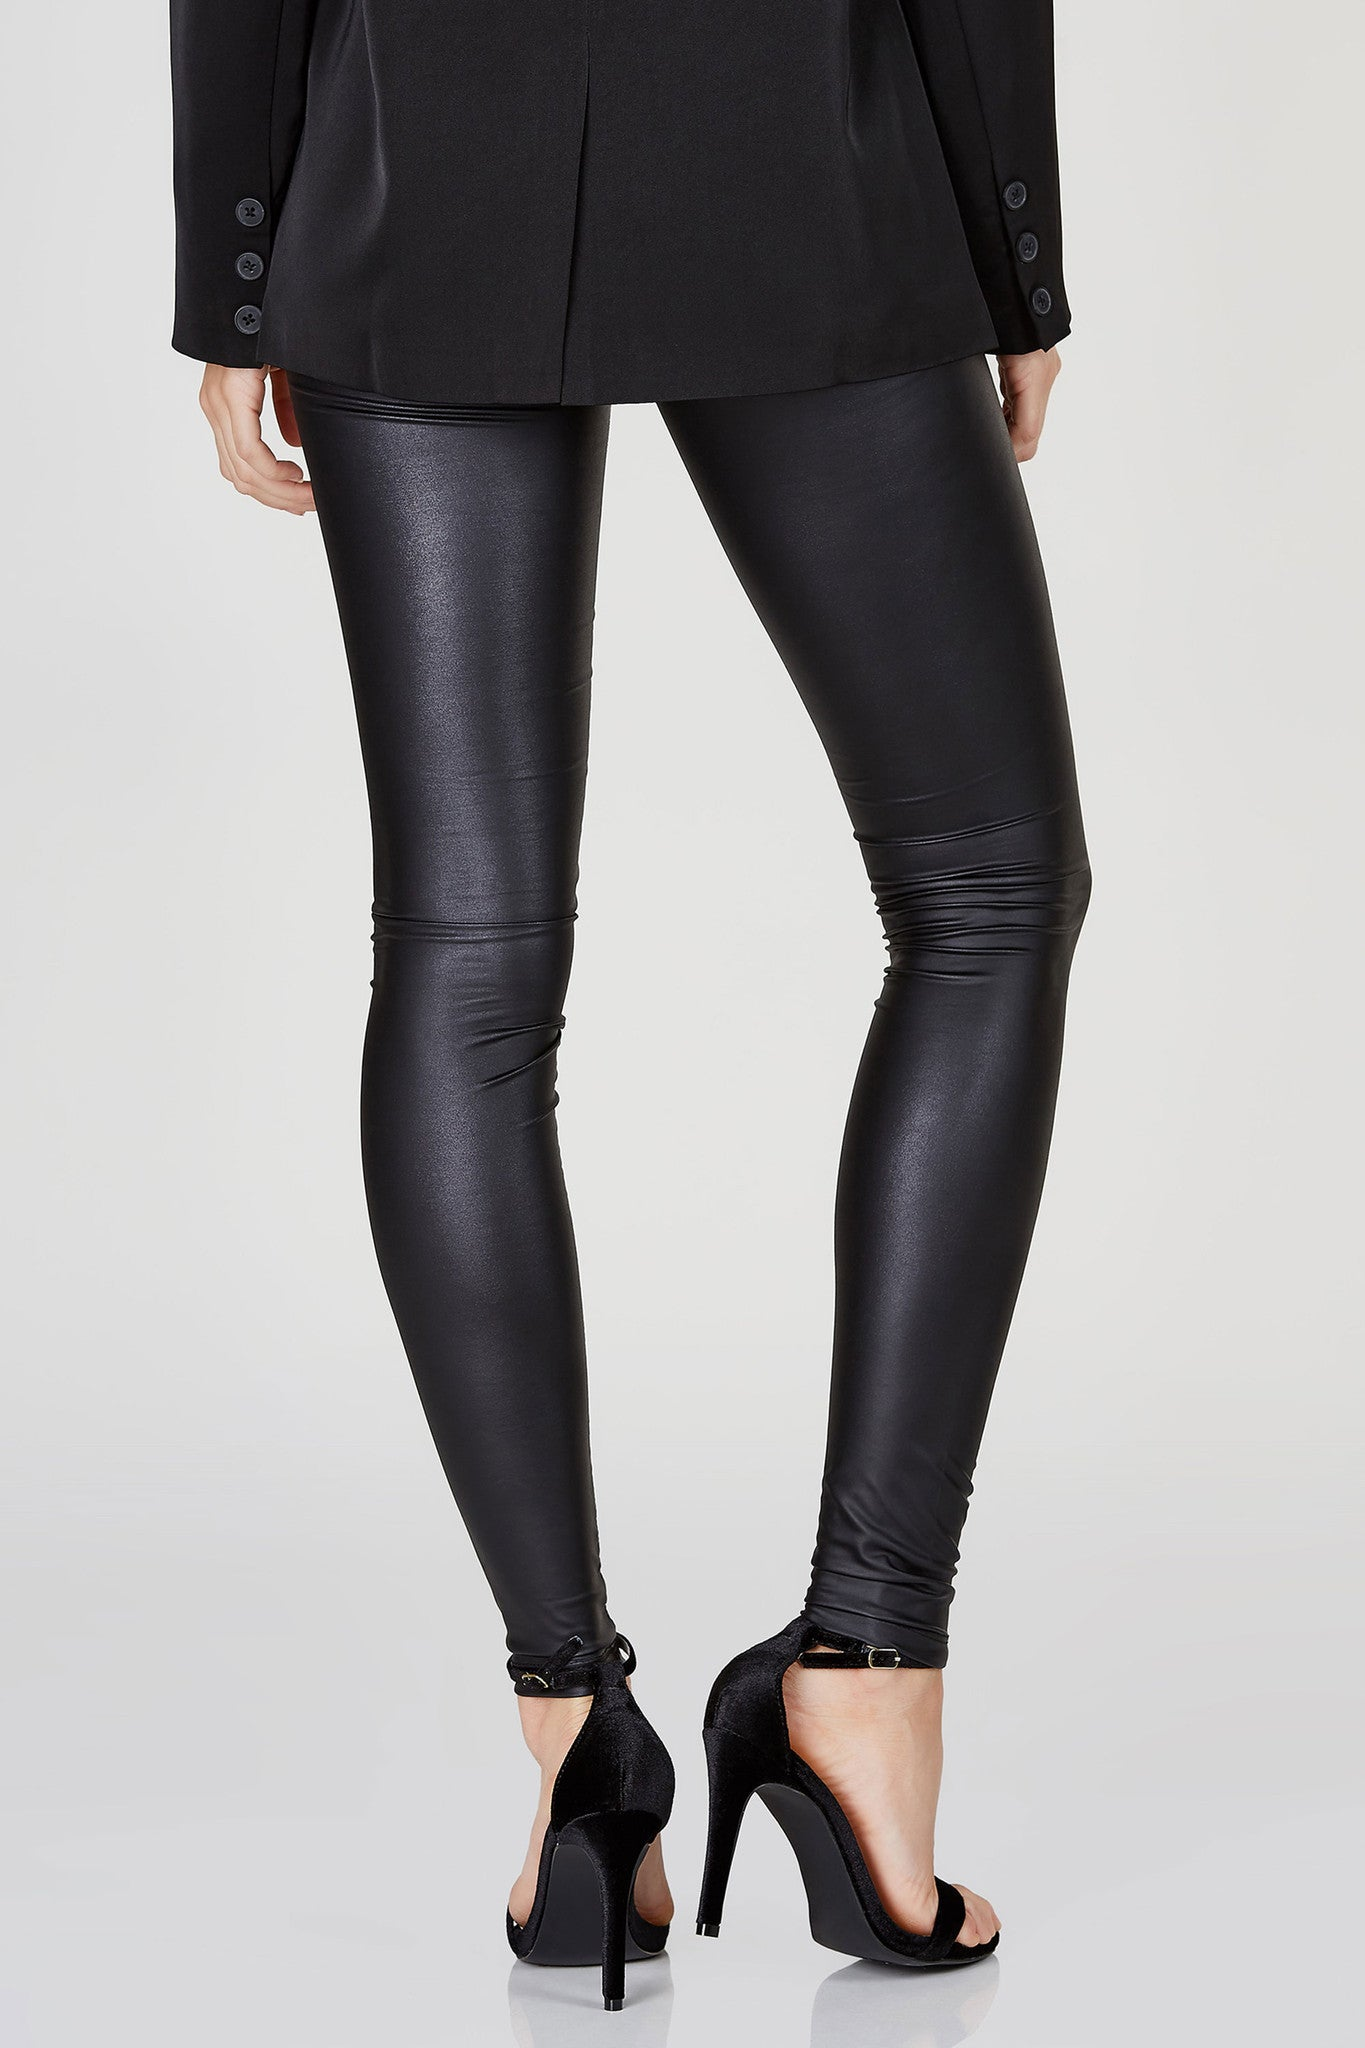 Slim fit and extra sleek. This simple design leggings are anything but boring! Smooth faux leather finish makes it perfect for a night out look in comfort! Style with a statement top and heels for a statement outfit!